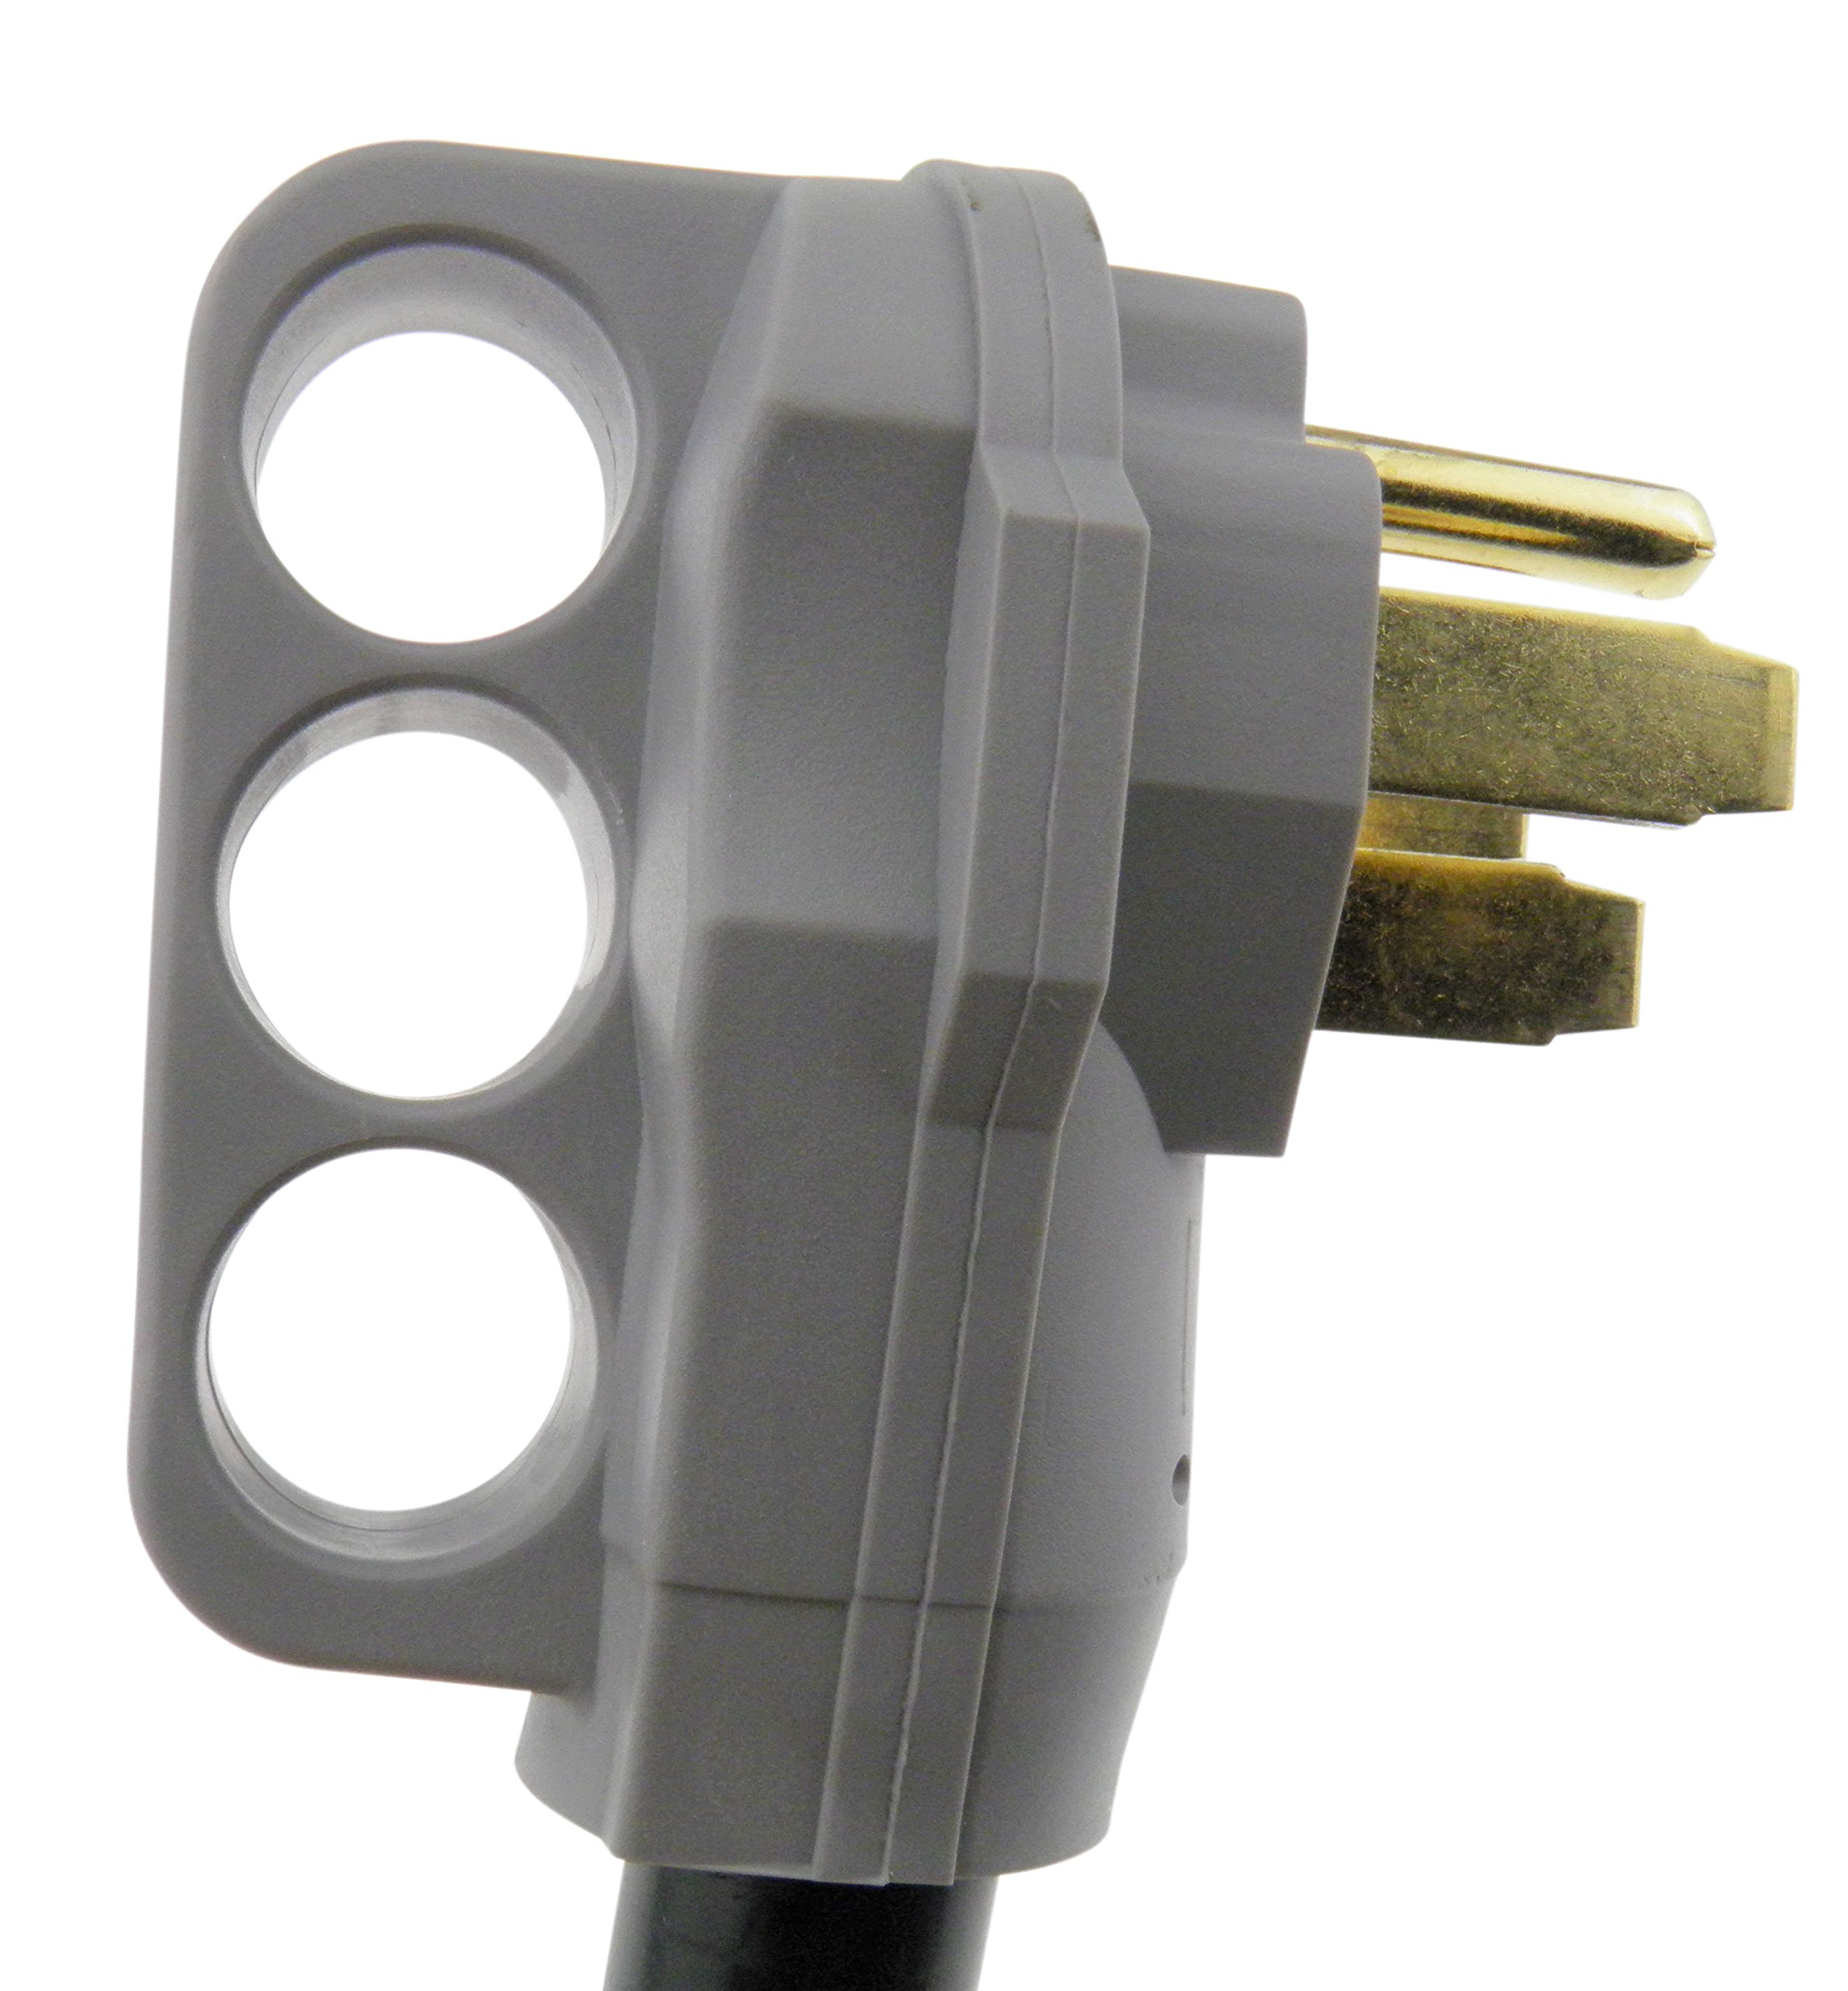 MPI Tools Nema 14-50 Power Cord (3) 6 Gauge Conductor and (1) 8 Gauge, 50 amp 125/250V (30) by MPI Tools (Image #4)